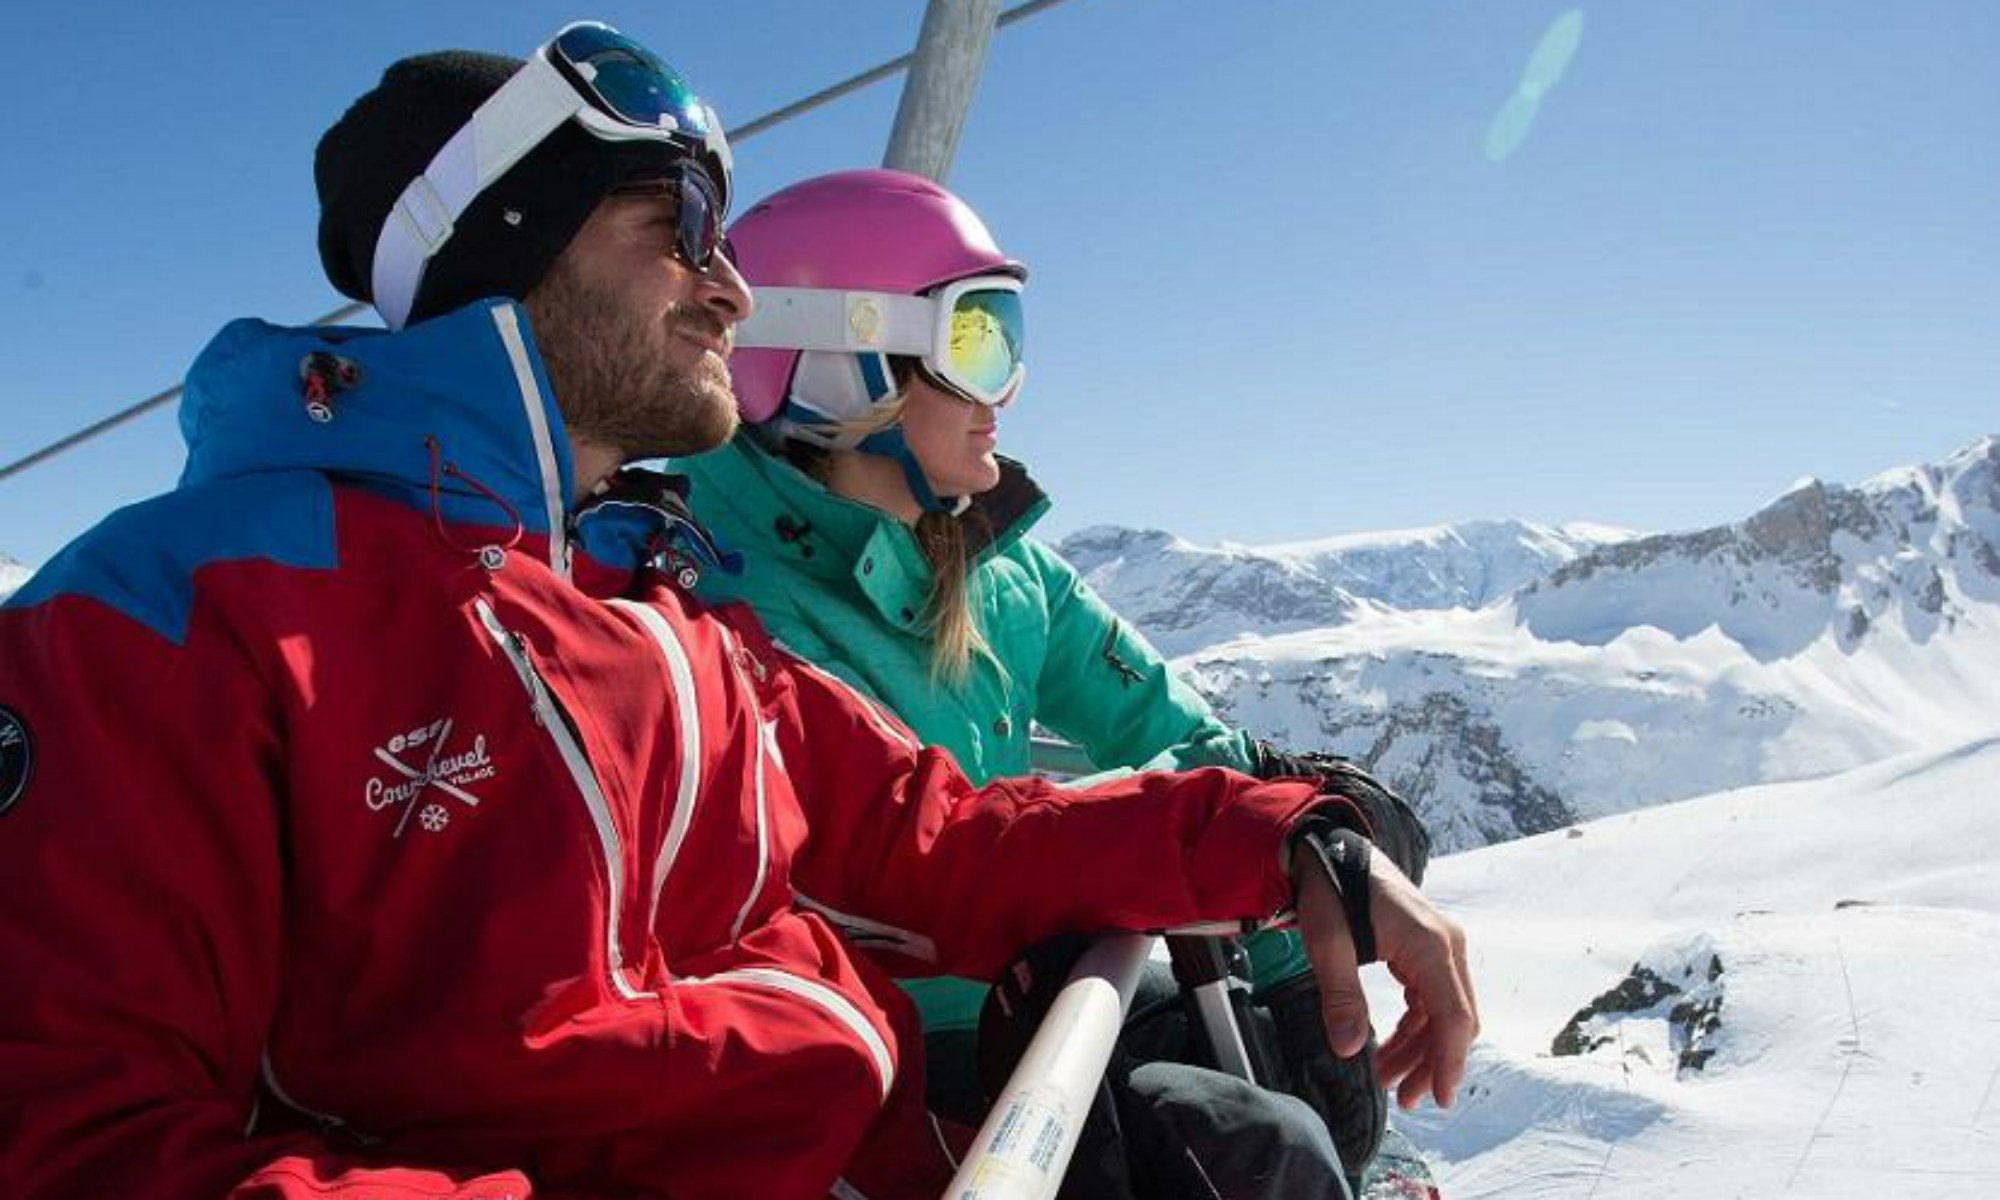 A private ski instructor and a female skier are sitting on a chairlift and enjoying the view over the ski resort of Courchevel.